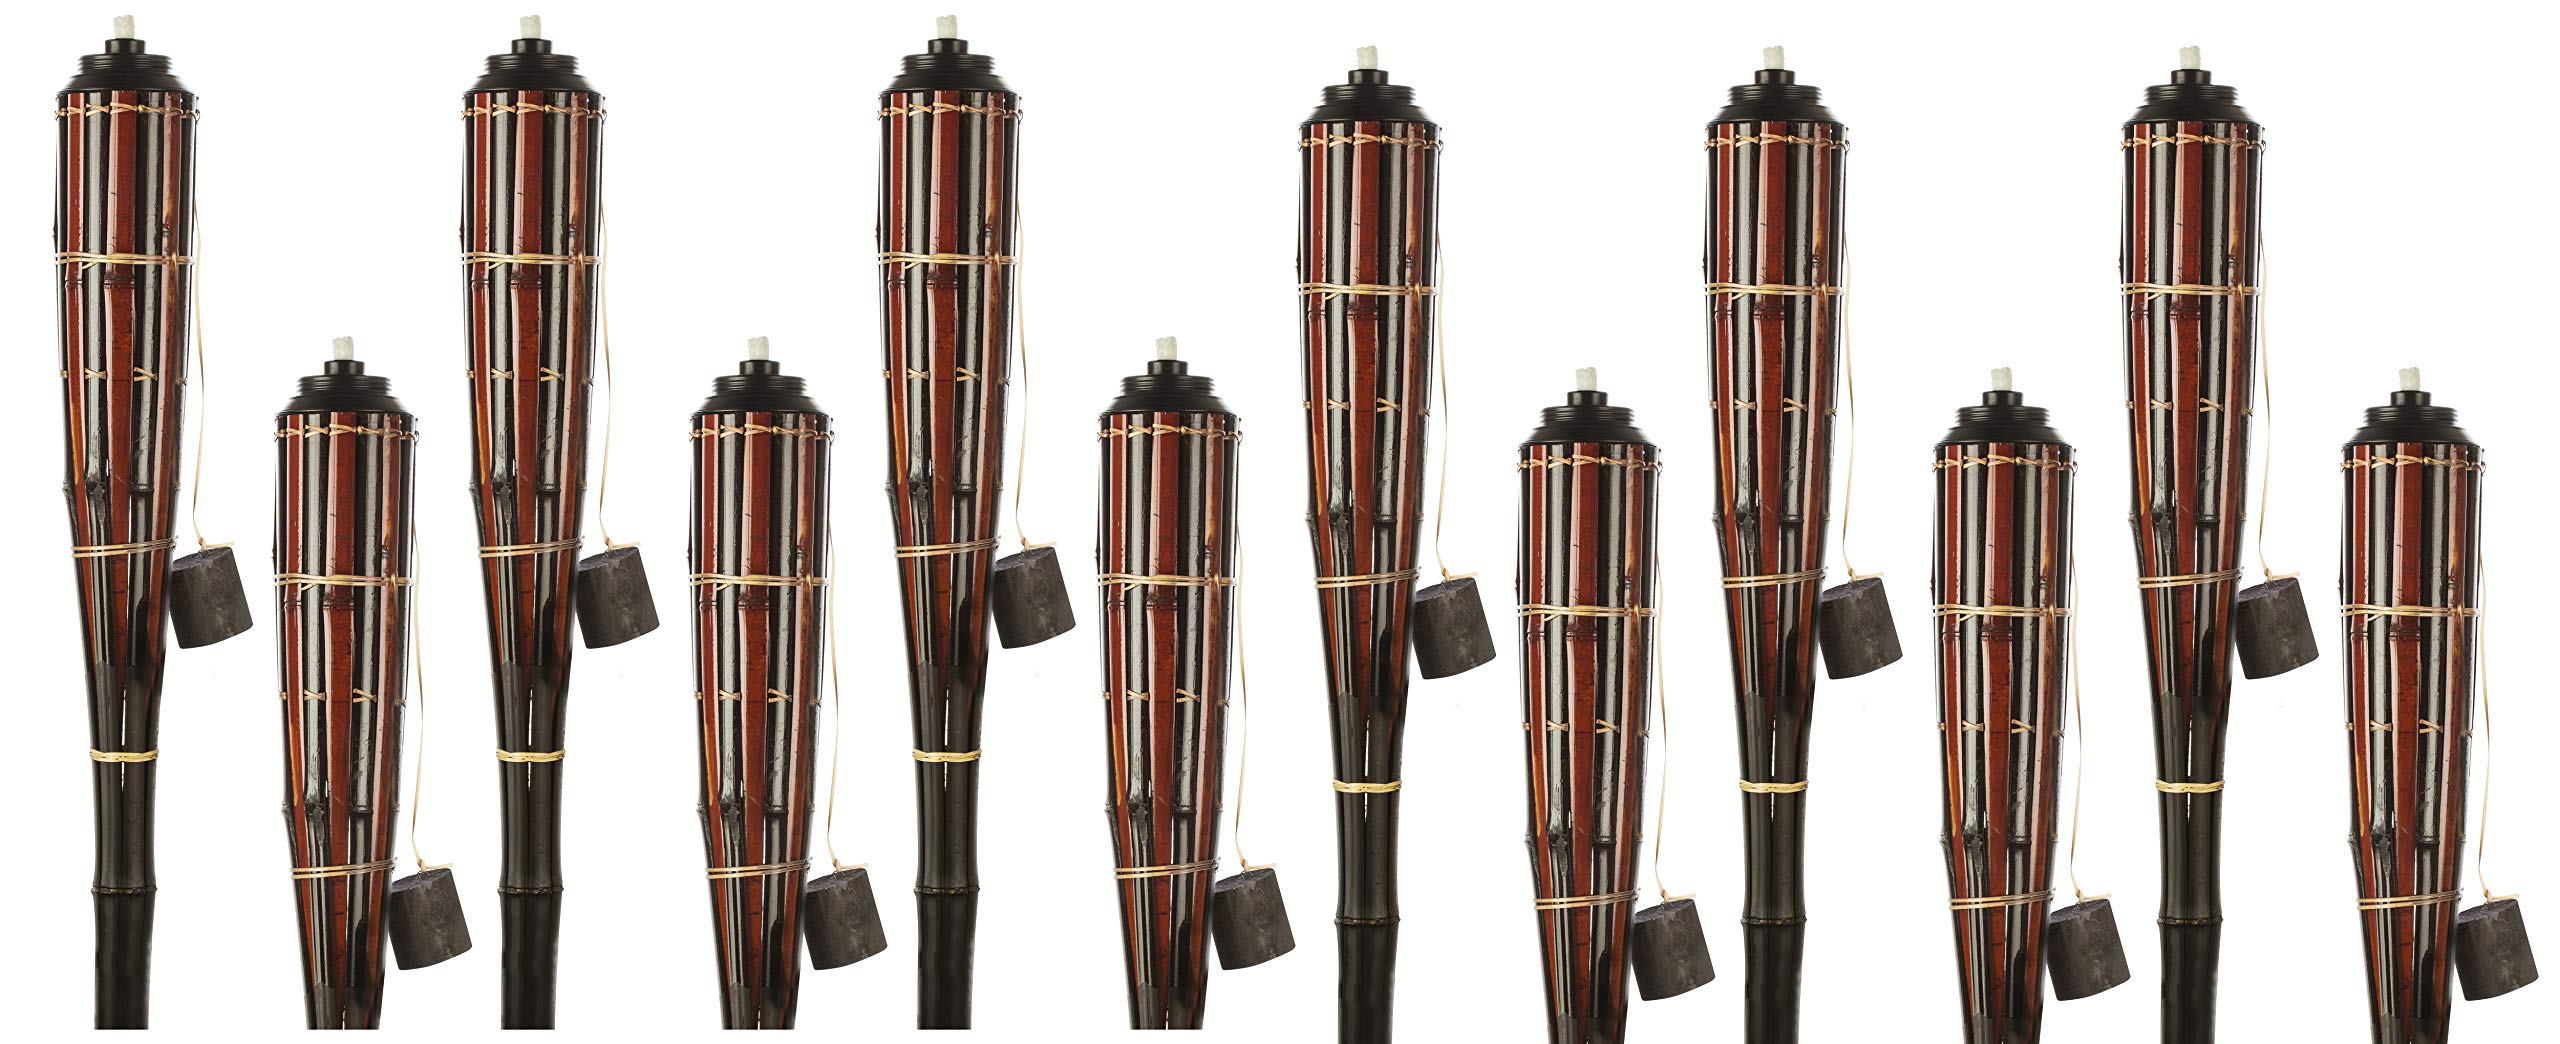 5 Star North Black Cherry/Espresso Stripe Bamboo Torches; Decorative Torches; Fiberglass Wicks; Extra-Large (16oz) Metal Canisters for Longer Lasting Burn; Stands 59'' Tall (12 Pack)